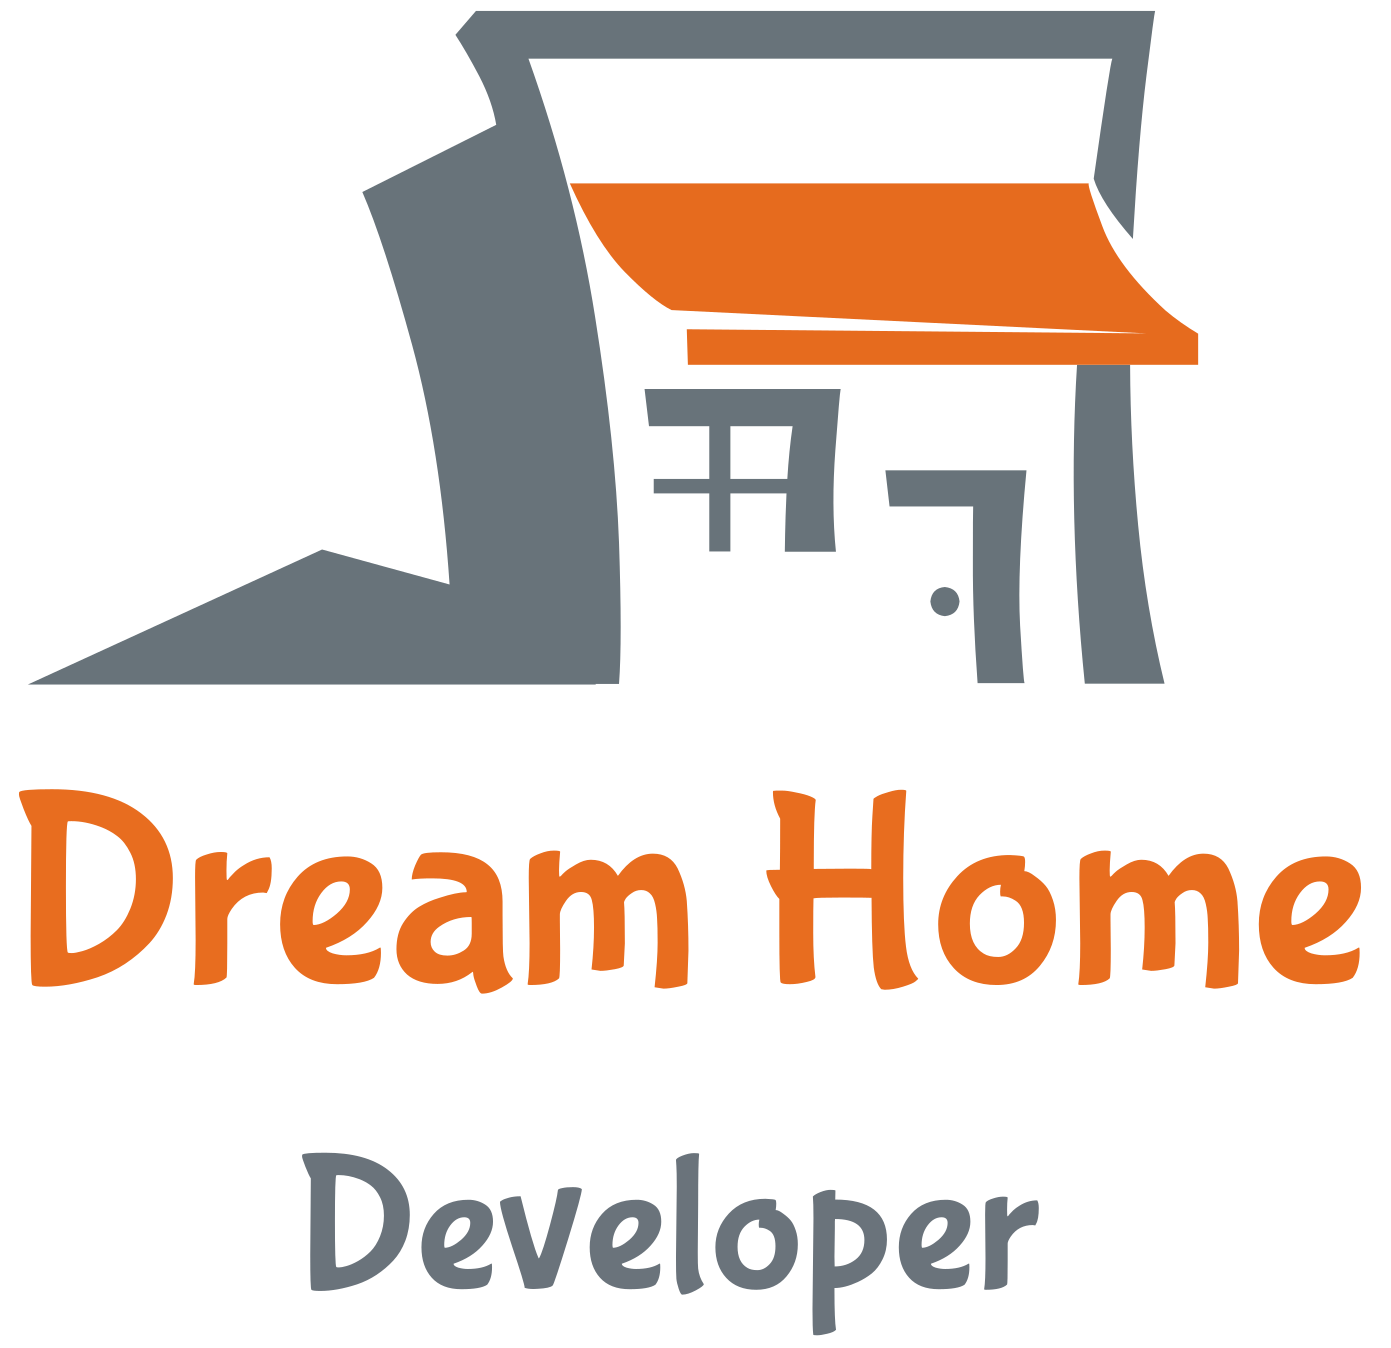 Dream Home Developer